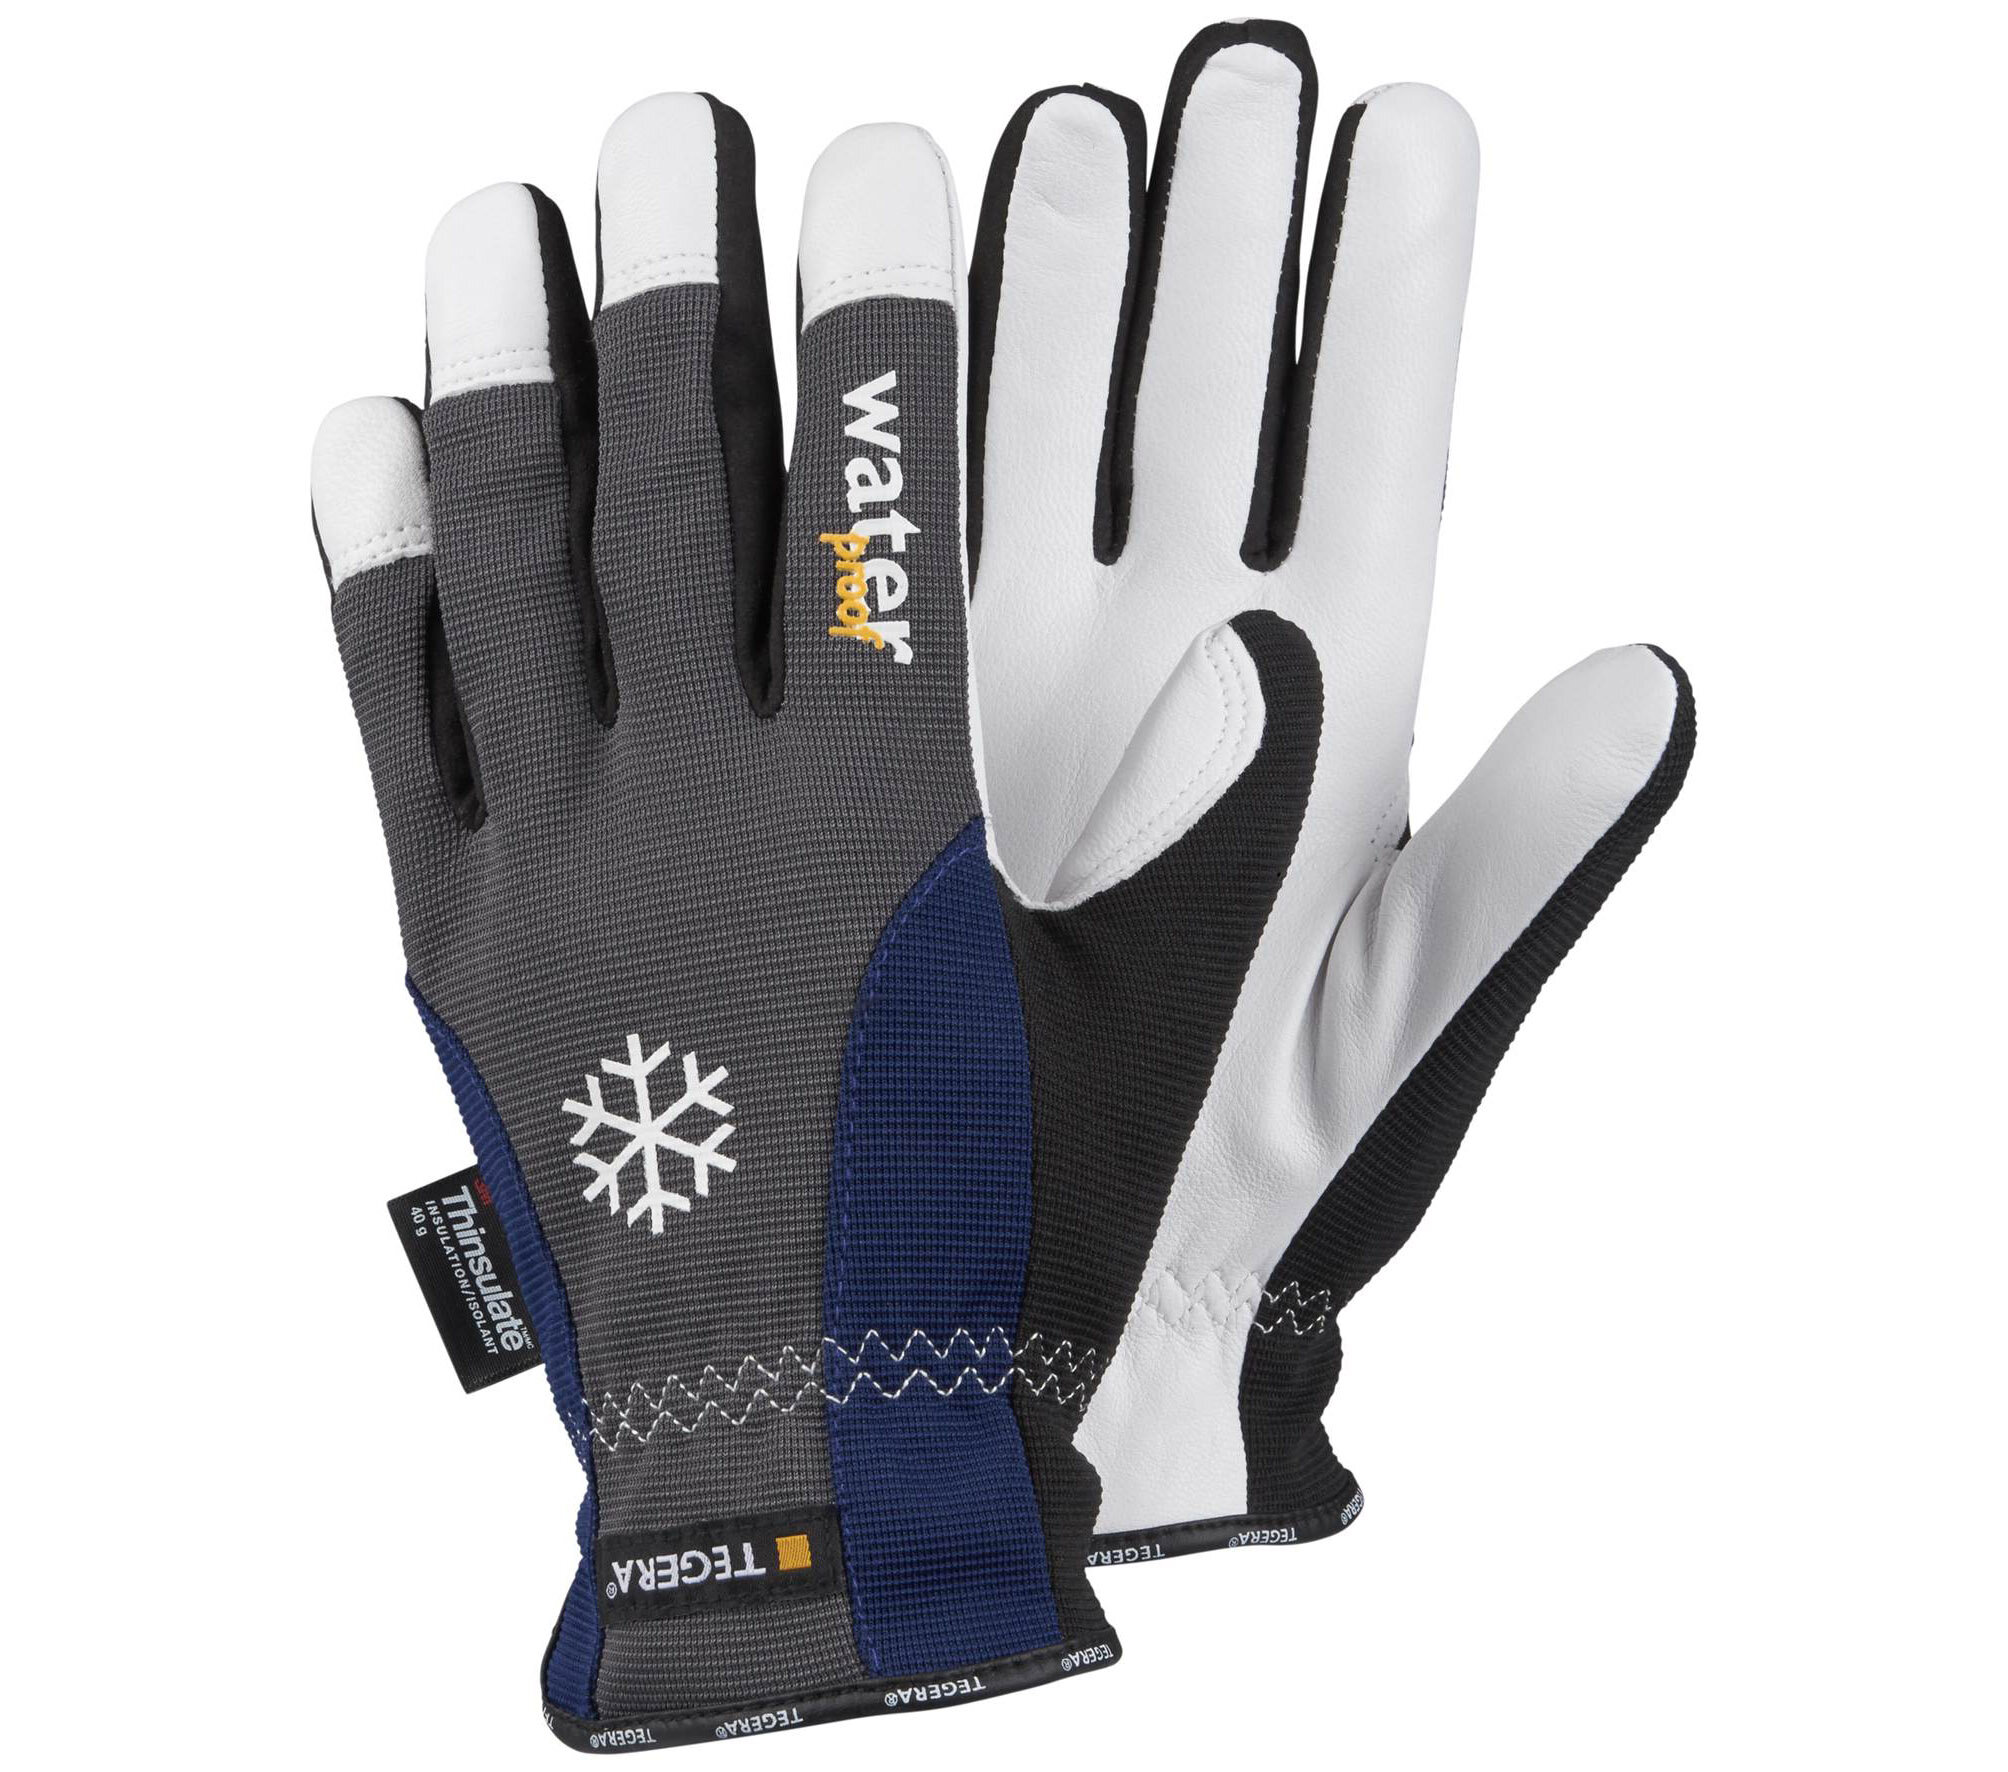 TEGERA 295 High Quality Cold Conditions Glove (Pair)